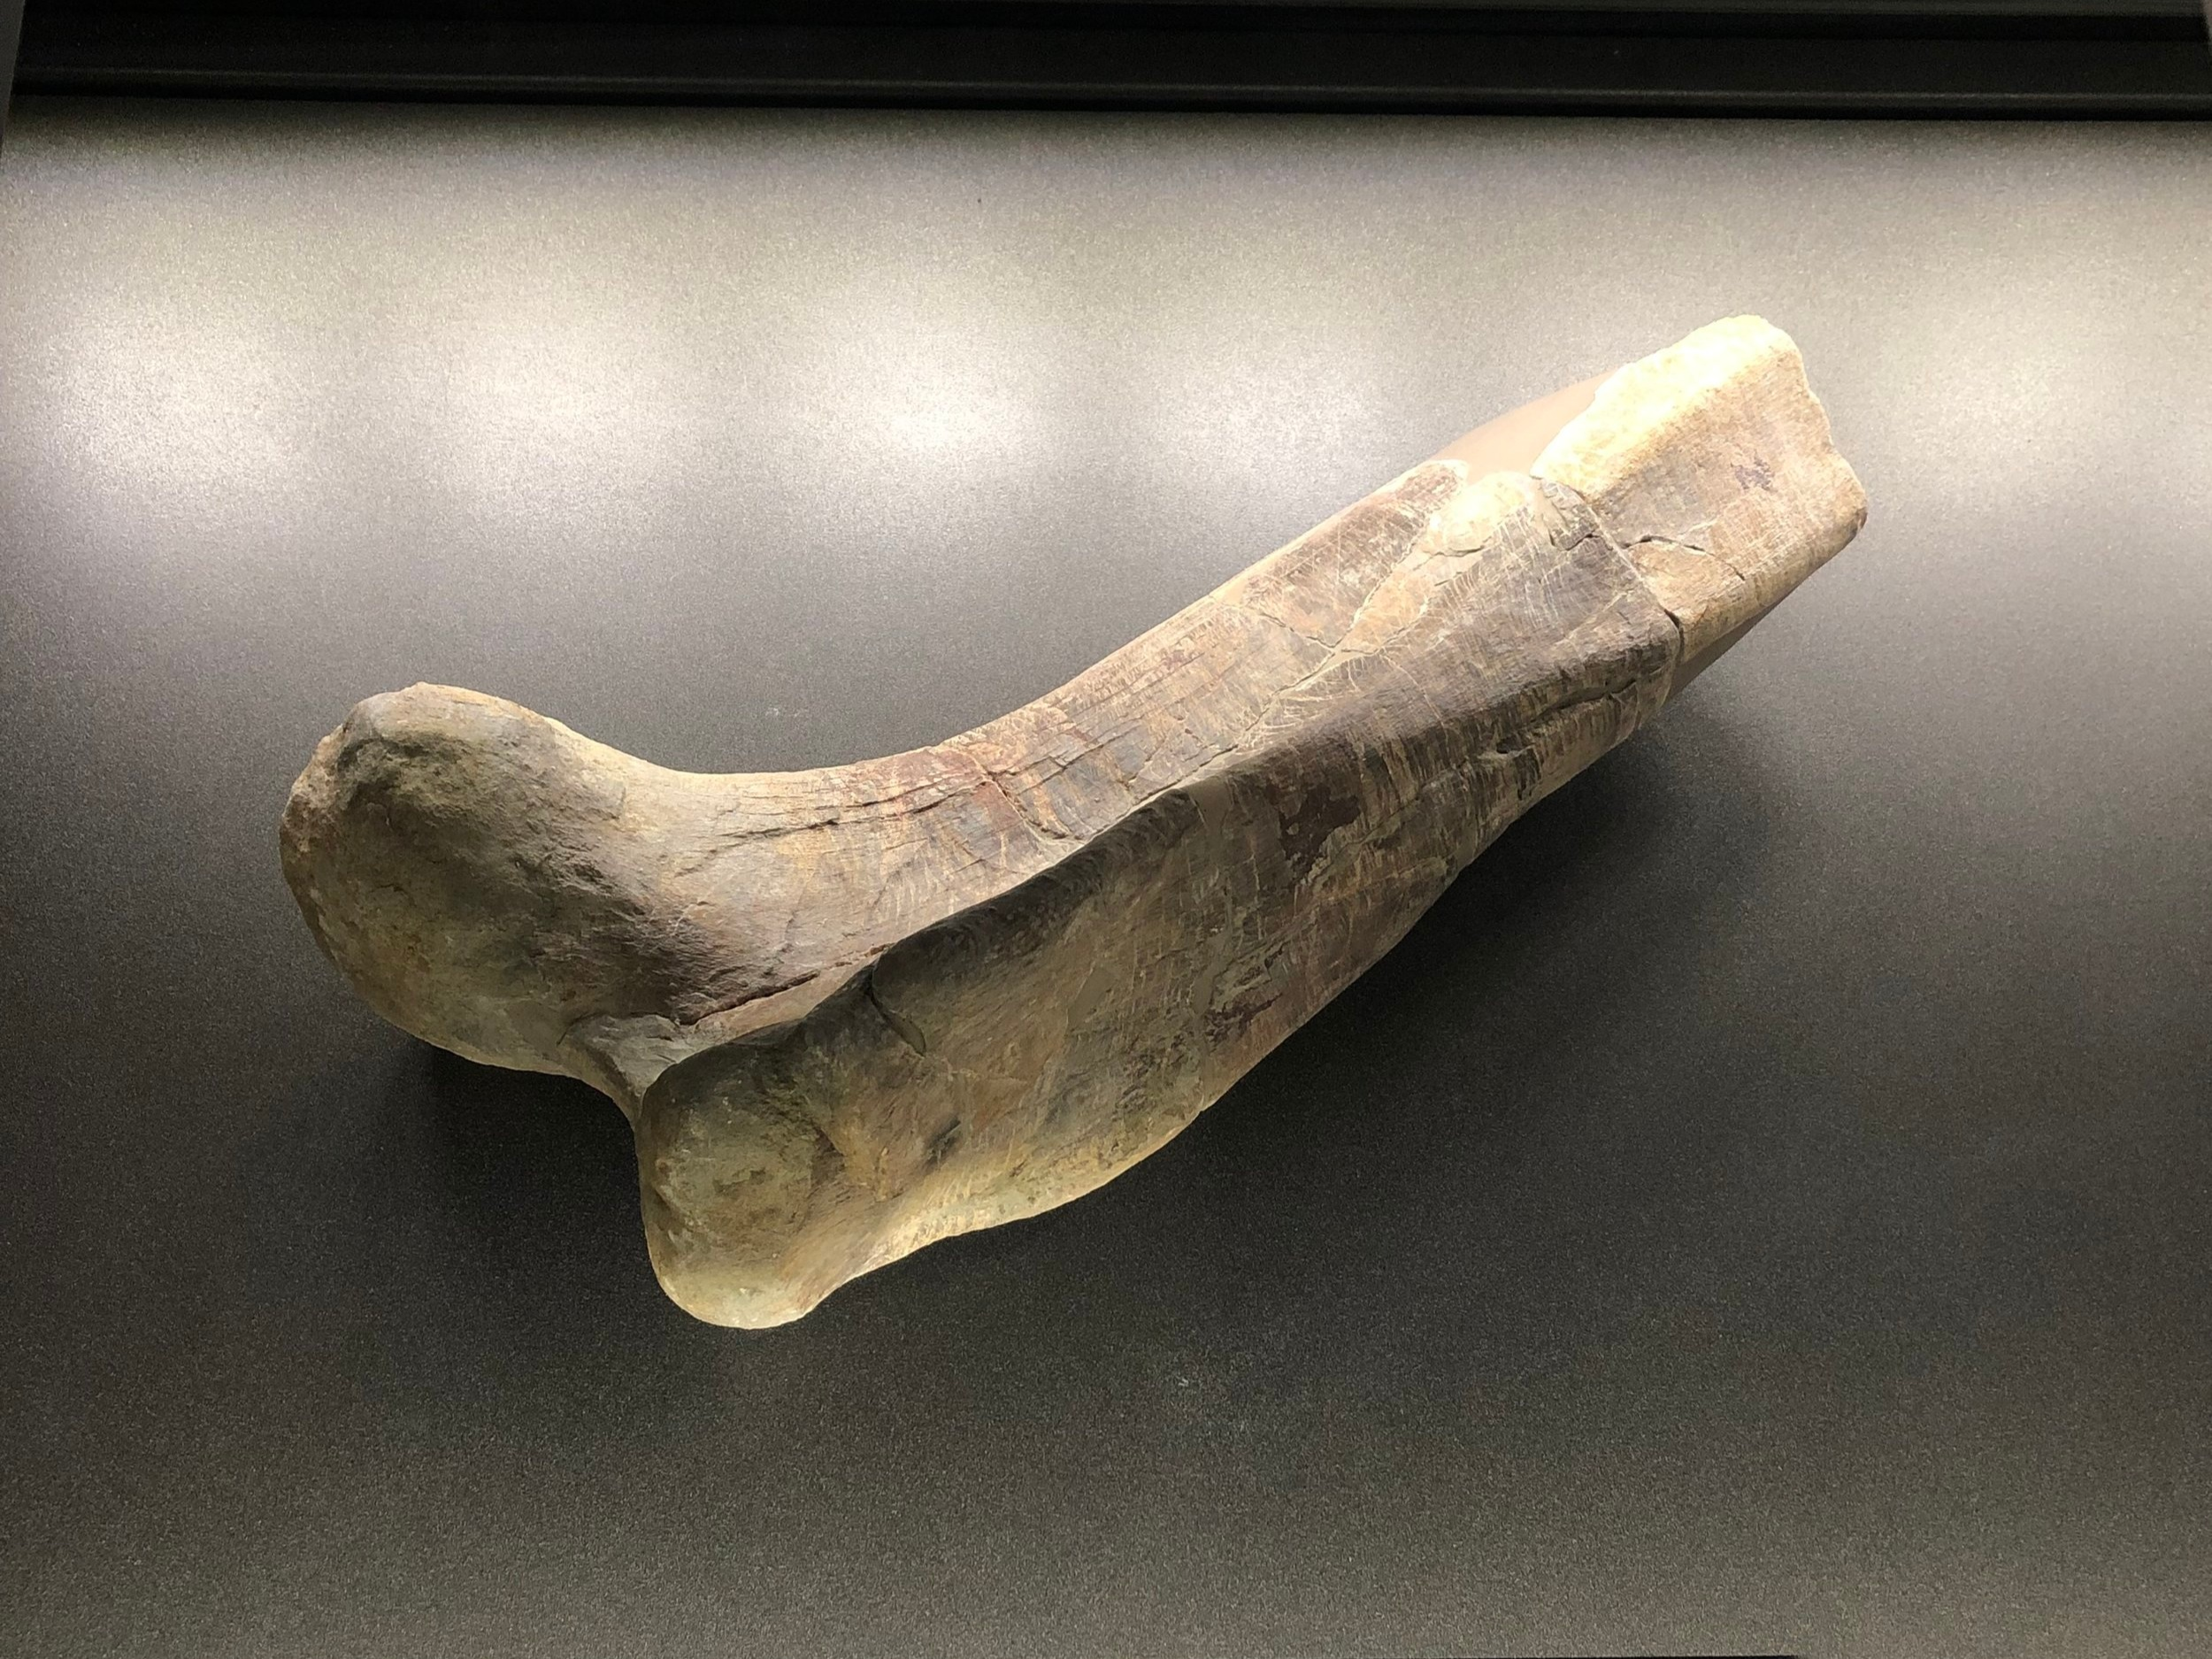 Right femur of a hadrosauroid from the Conca Dellà Museum | Credit: Talita Bateman